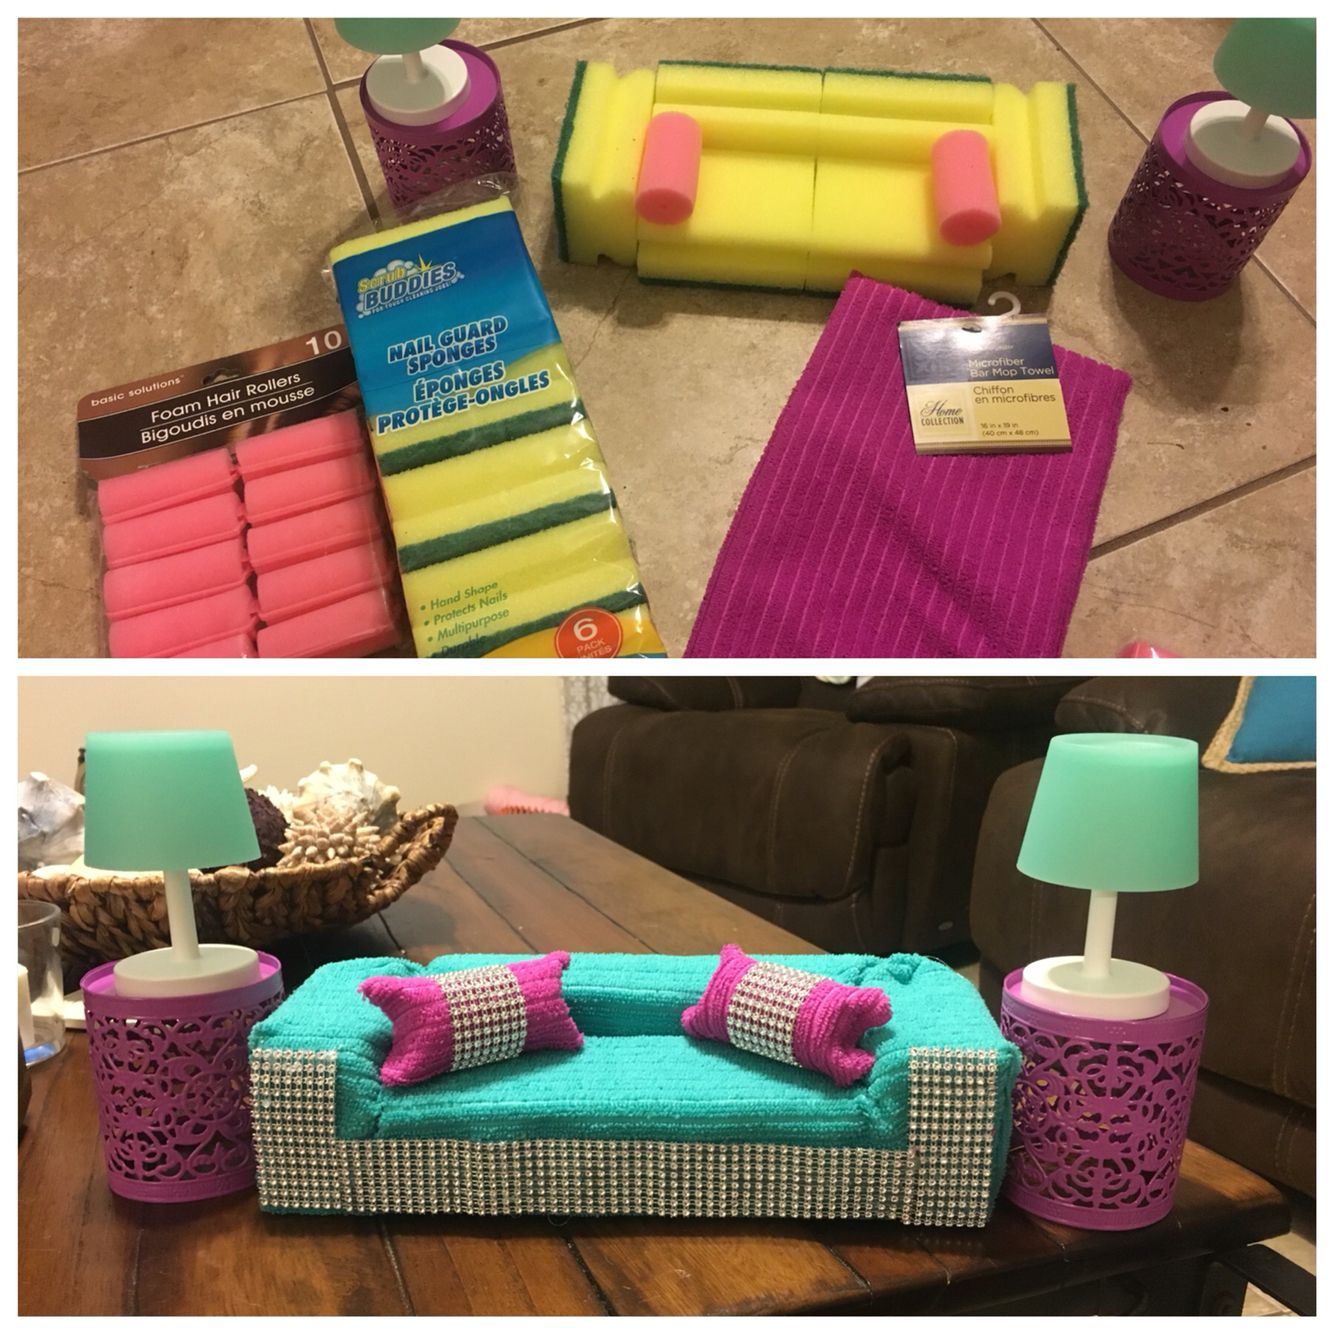 Barbie Furniture Diy: Barbie Furniture. 6 Sponges Used For Couch (1 Package) . 2